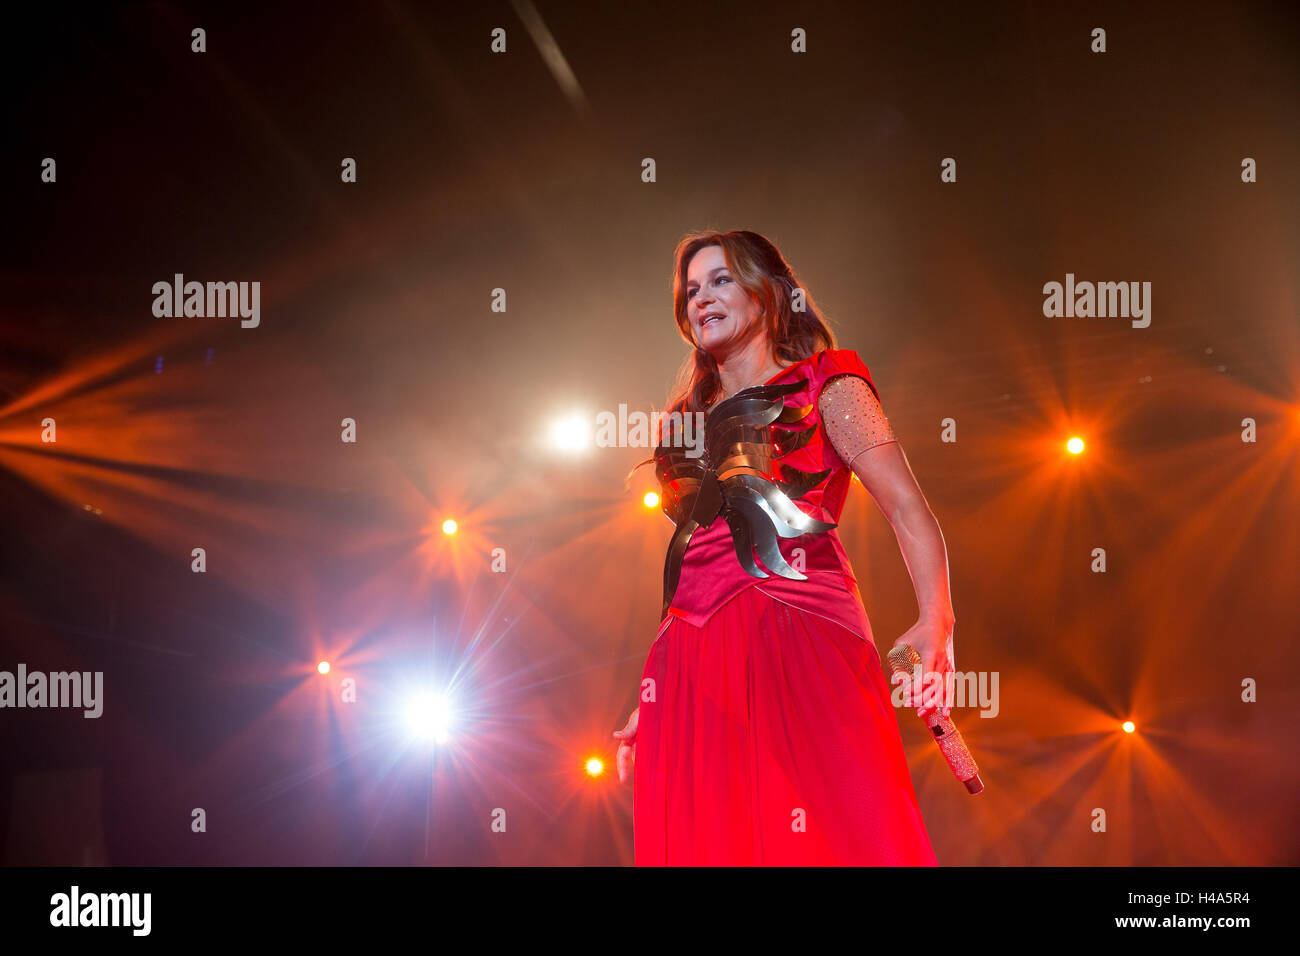 German hit singer Andrea Berg stands on stage during her concert 'Seelenleben' (lit. 'soul life') in Krefeld, Germany, Stock Photo